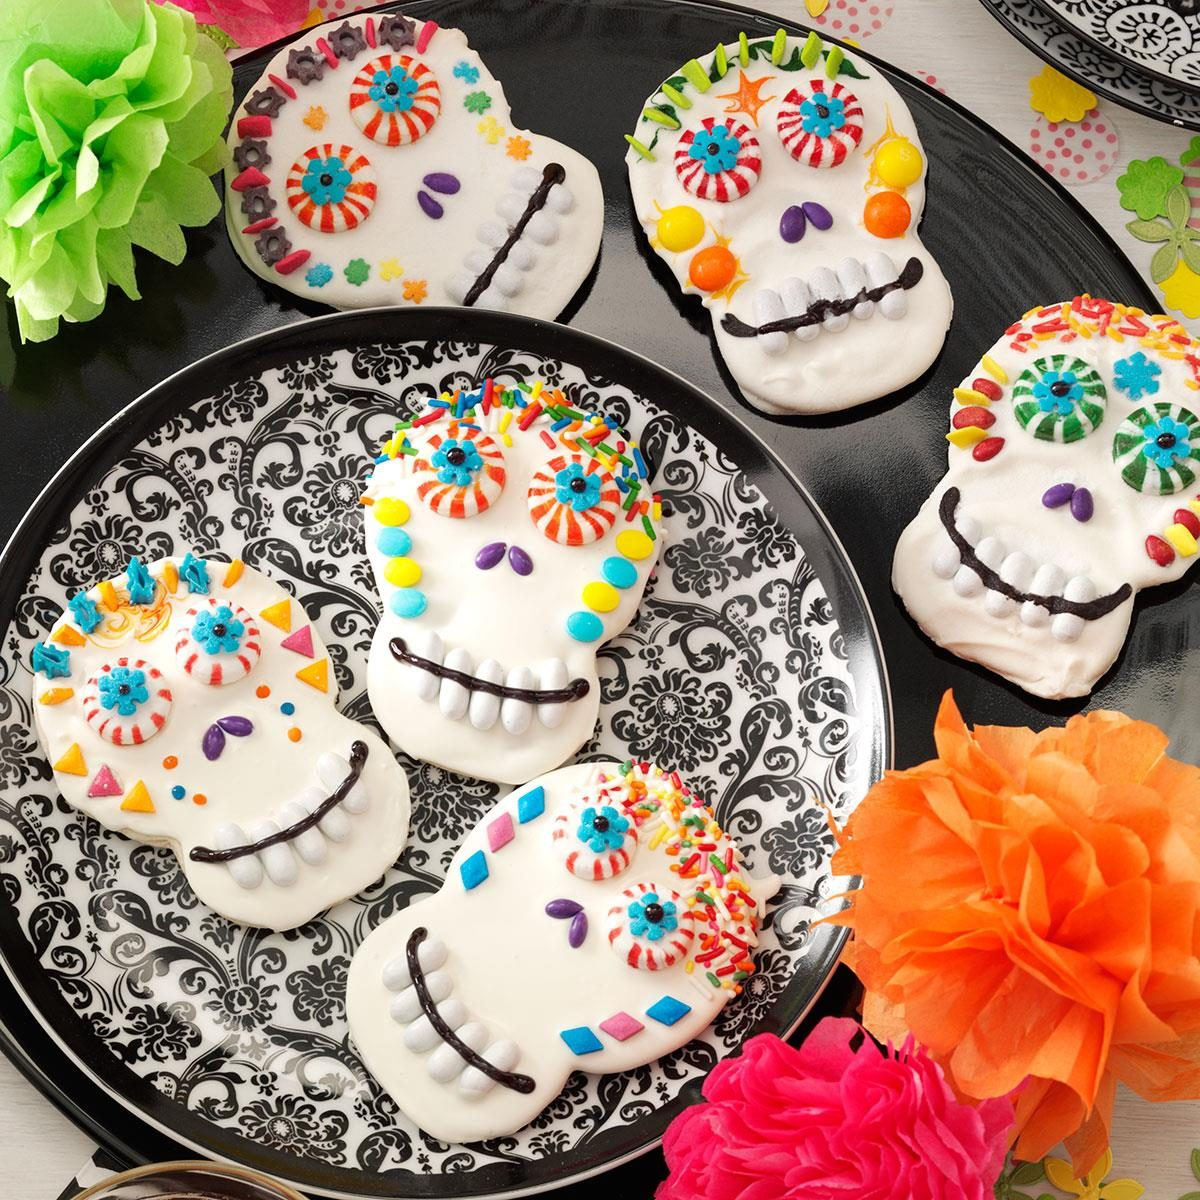 day of the dead cookies recipe taste of home - Decorating Halloween Cookies